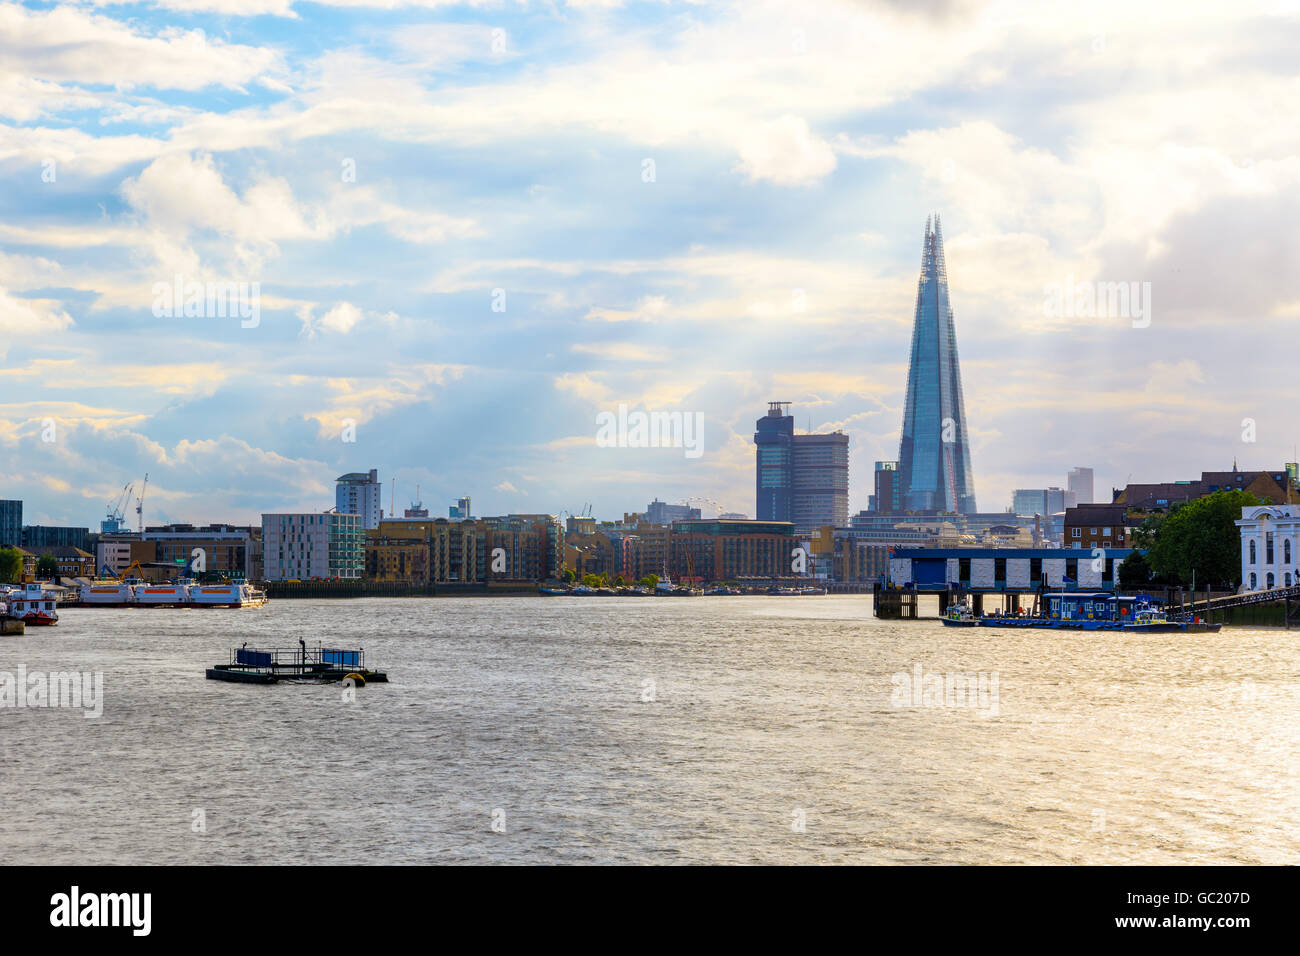 London cityscape with rays of sunlight shining through clouds - Stock Image